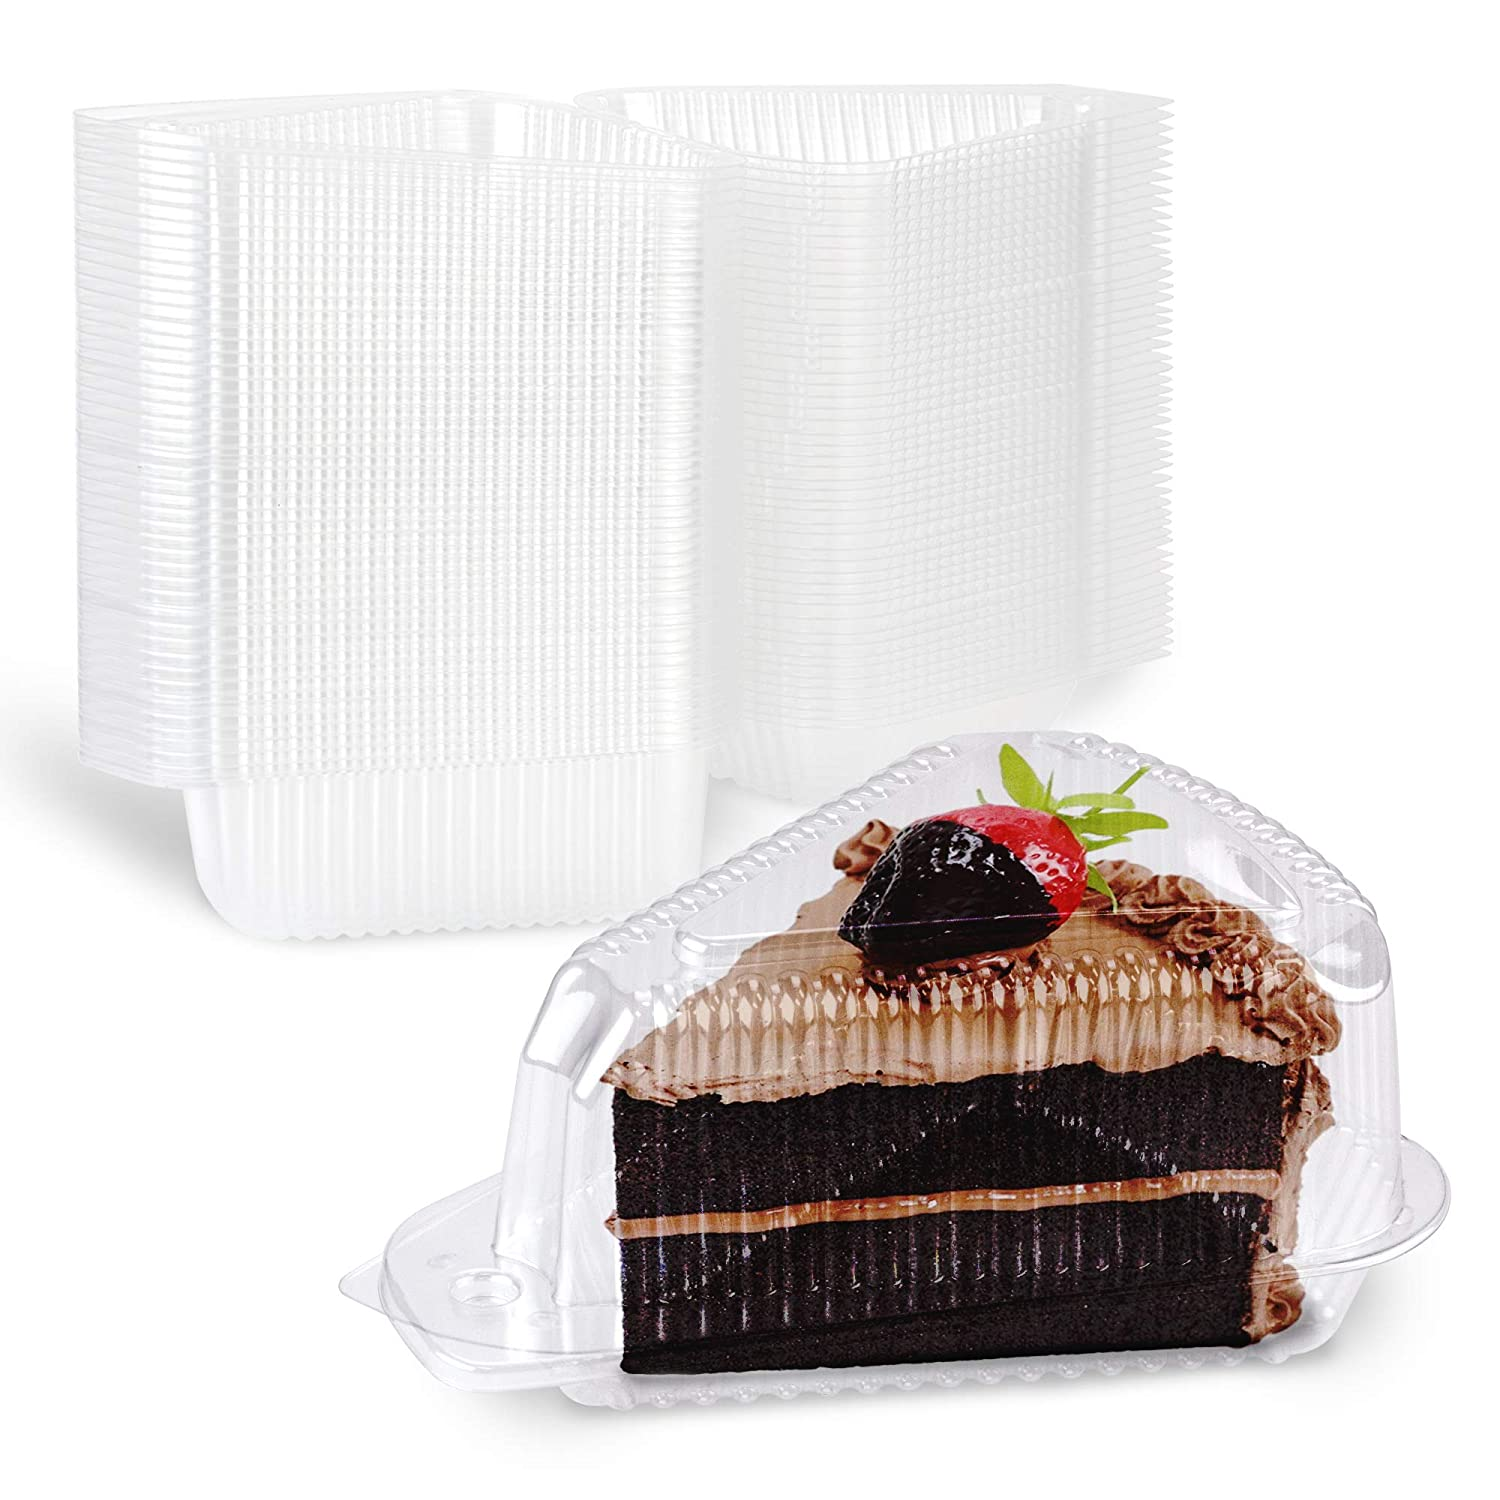 """[50 Pack] Cake Slice Plastic Containers with Lids - Single 5"""" Clear Medium Dome Hinged Lid Cheesecake Container, Pie Dessert, Food Box, Take Out Togo Packaging for Home, Bakery and Cafe Business"""